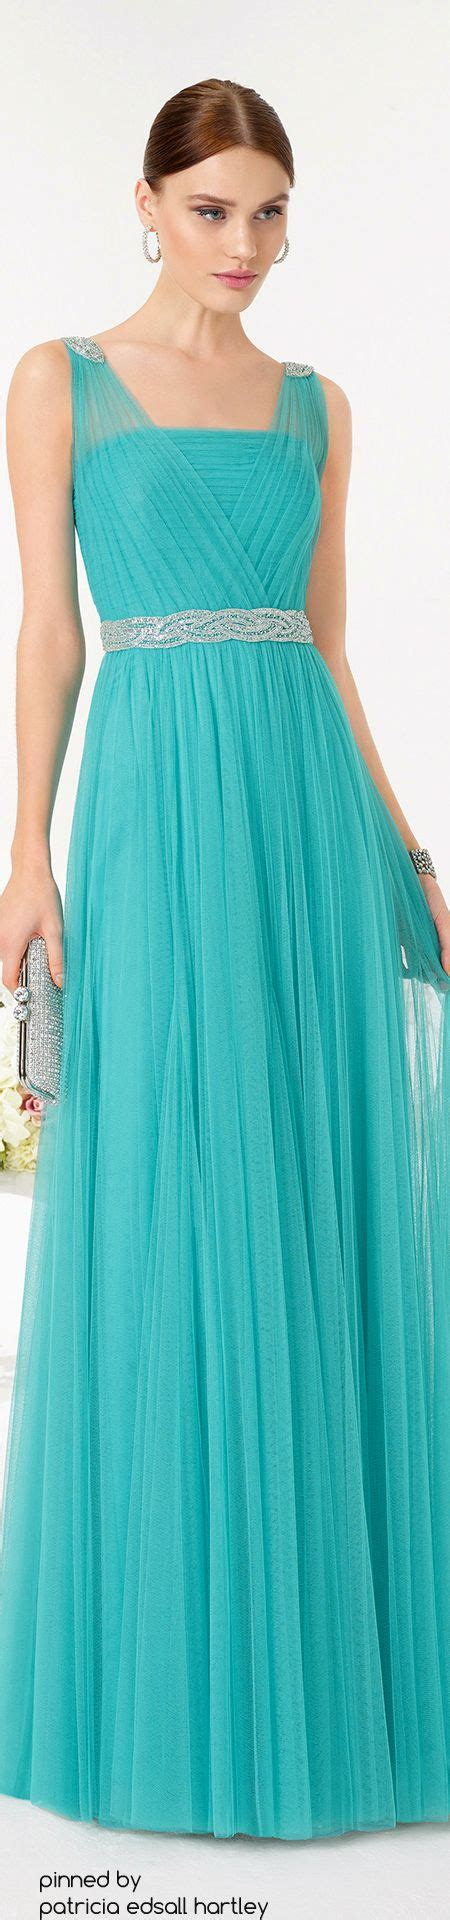 Maltesse Maxydress 1000 images about turquoise temptation on